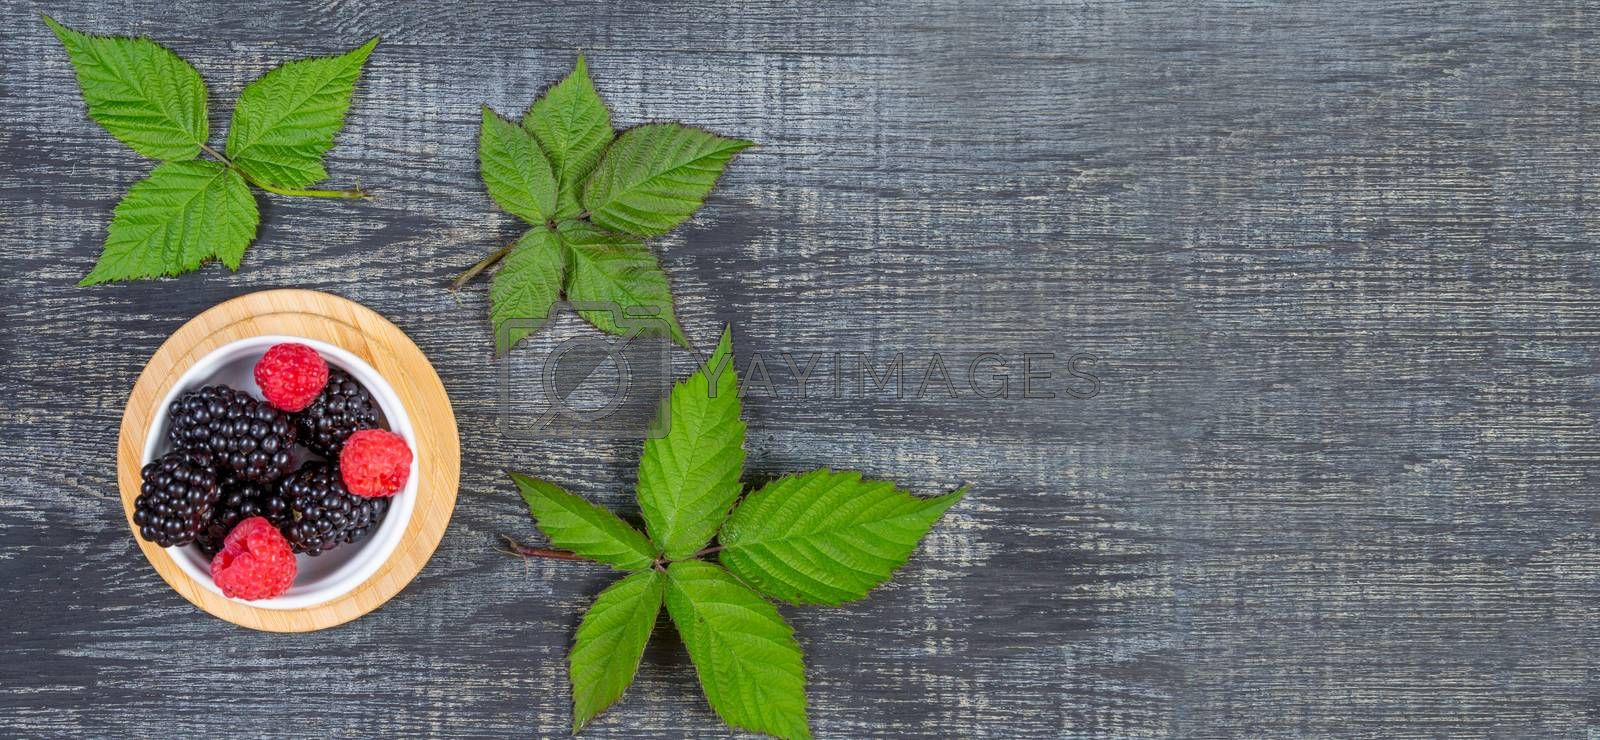 ripe blackberry with leaves on a wooden cutting board in a white ceramic bowl on dark blue wooden background. top view, banner